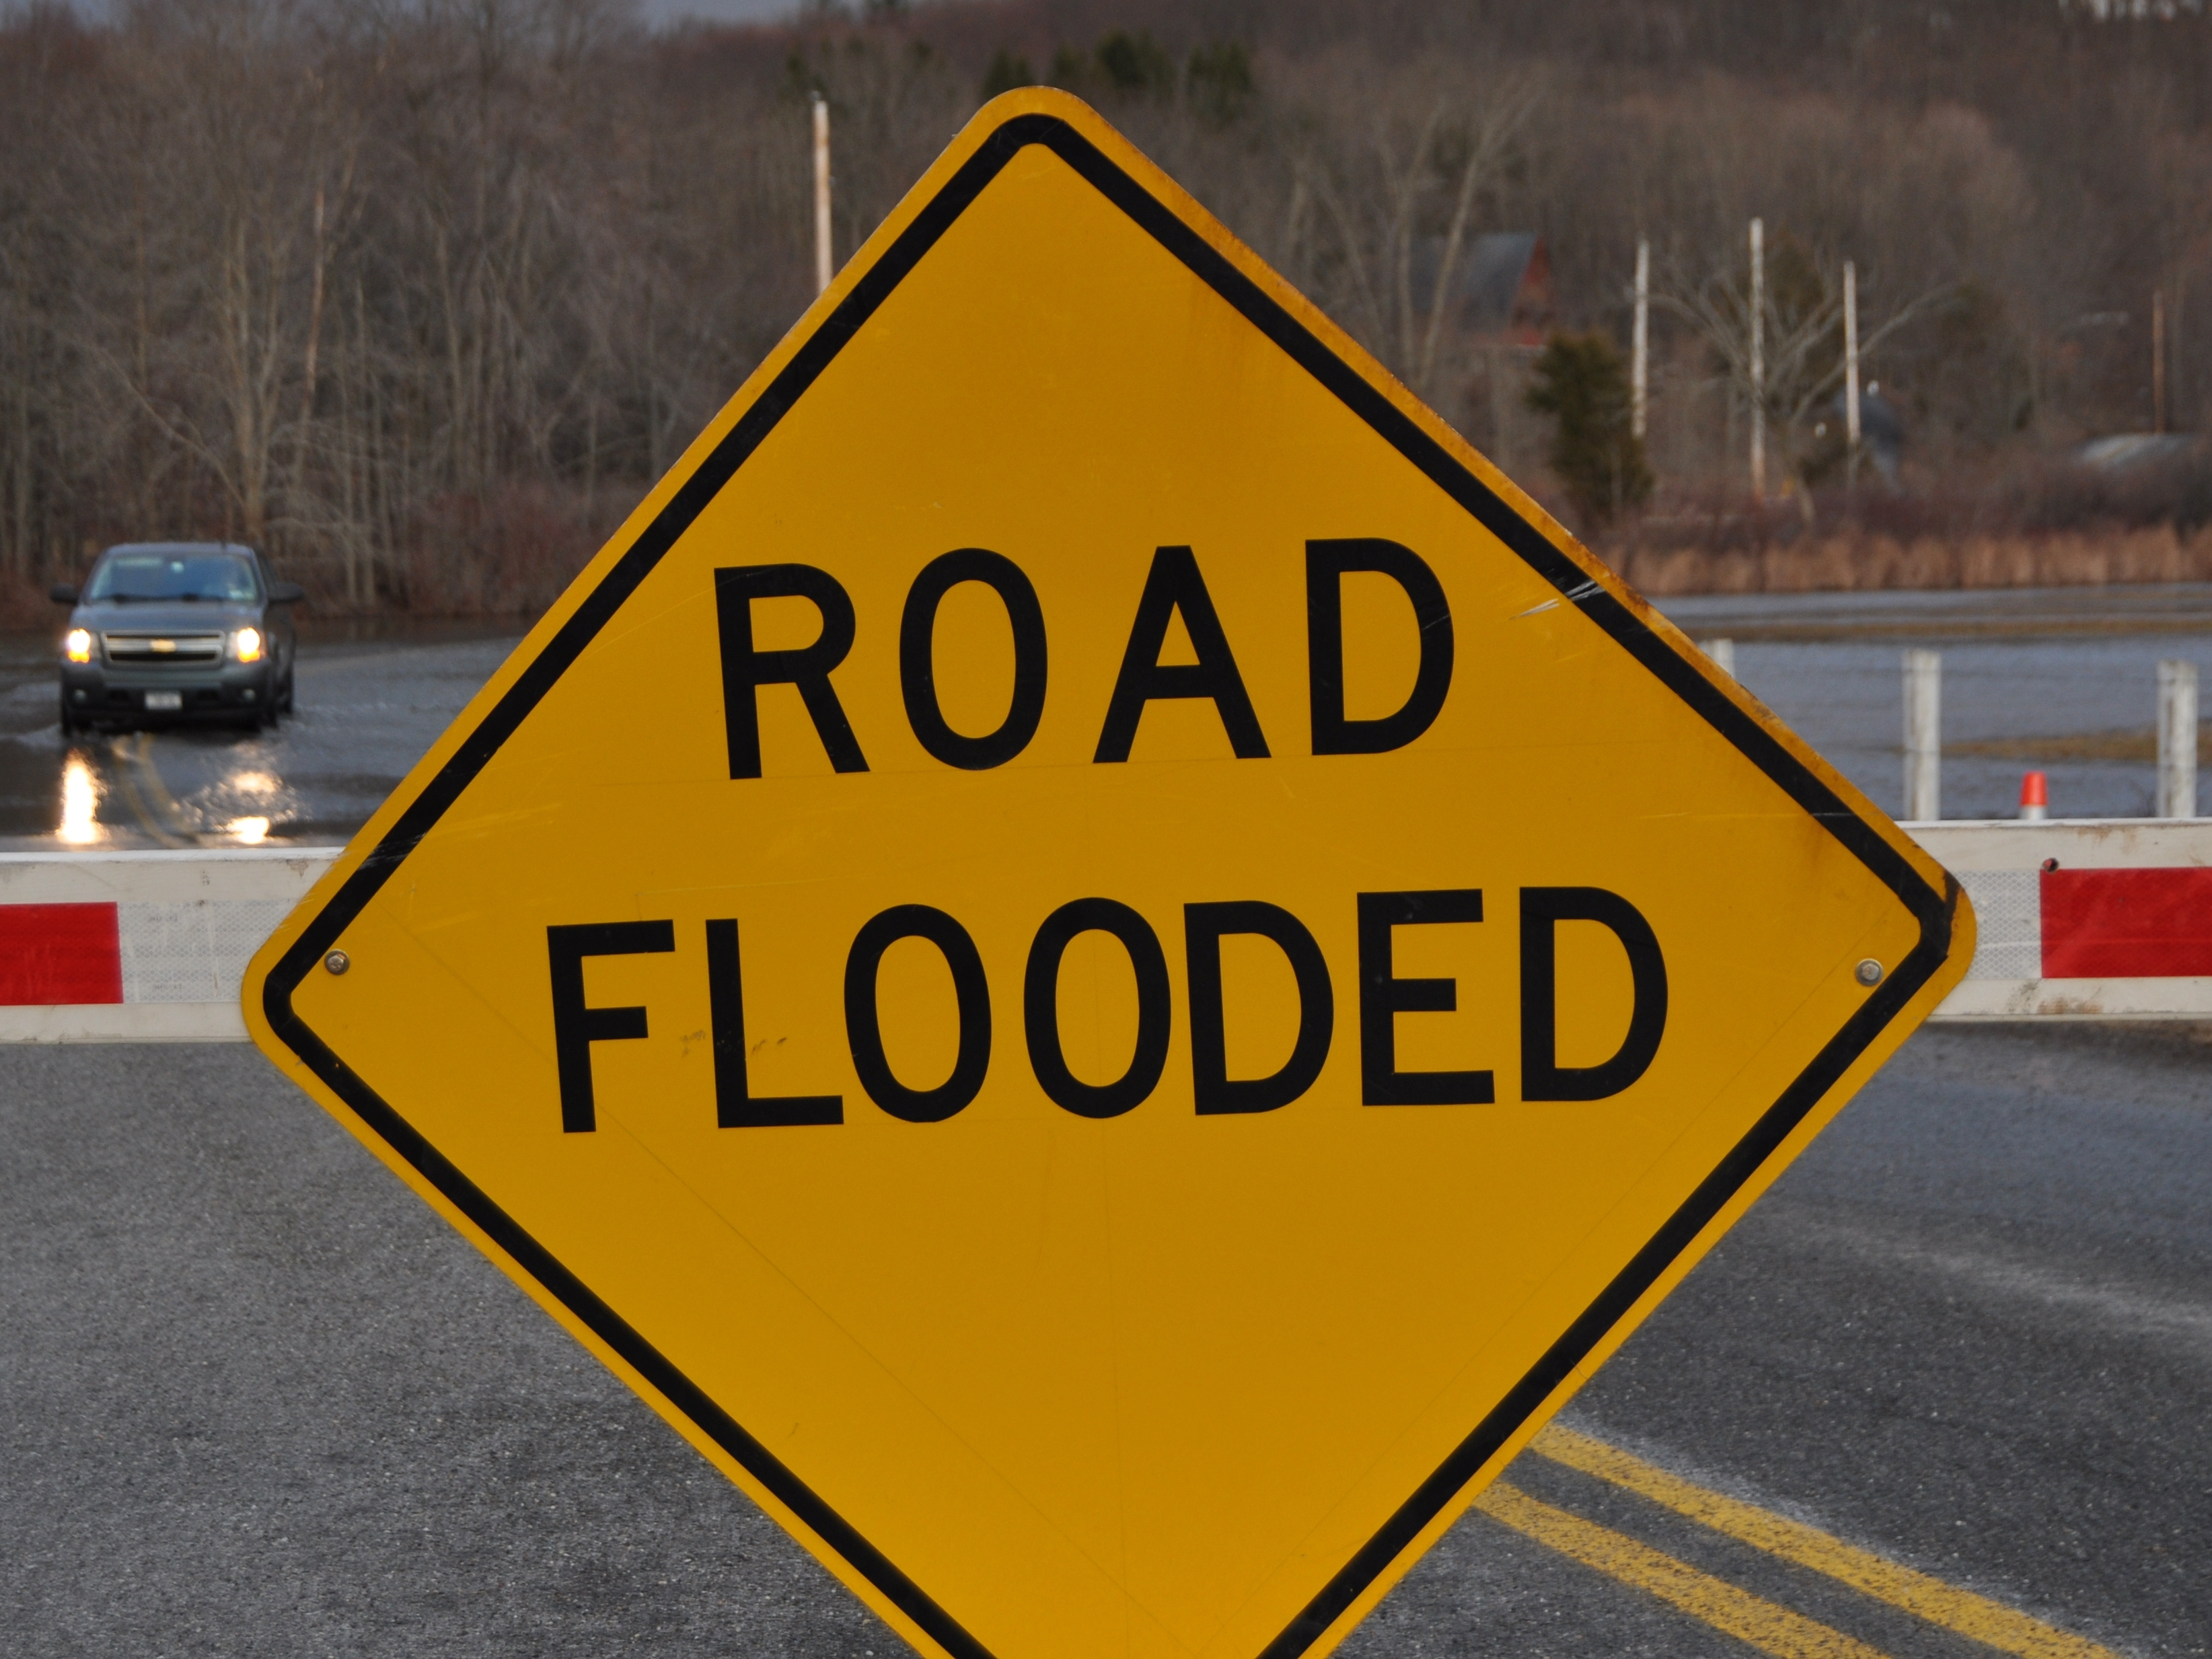 bcd2a73a4045213c13ec_Road_flooded_sign_Gidly_Road.JPG